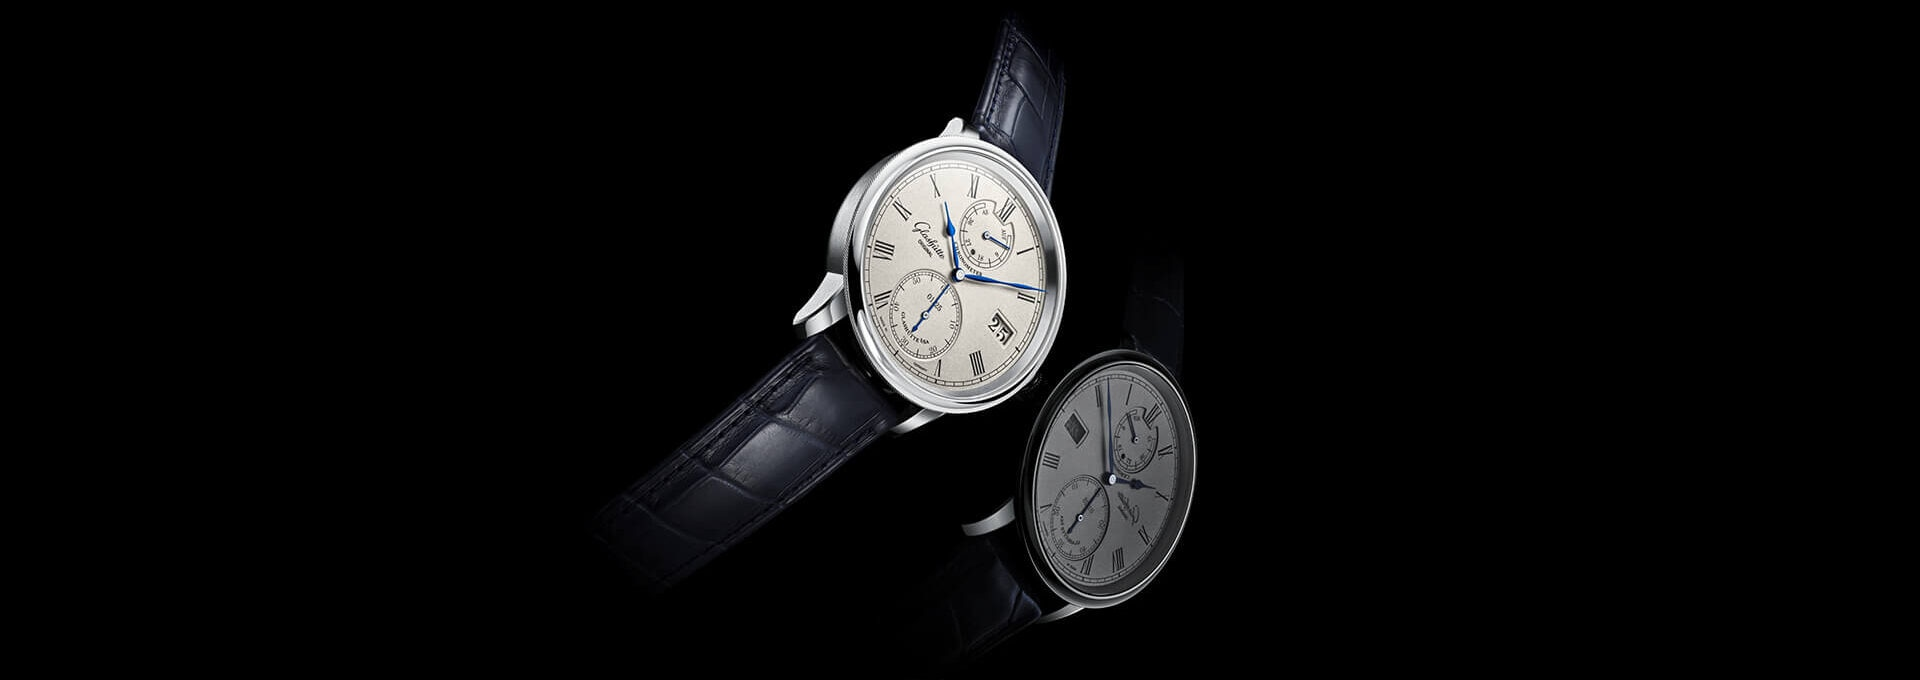 Glashuette_Original-W15803010430-Detail-6